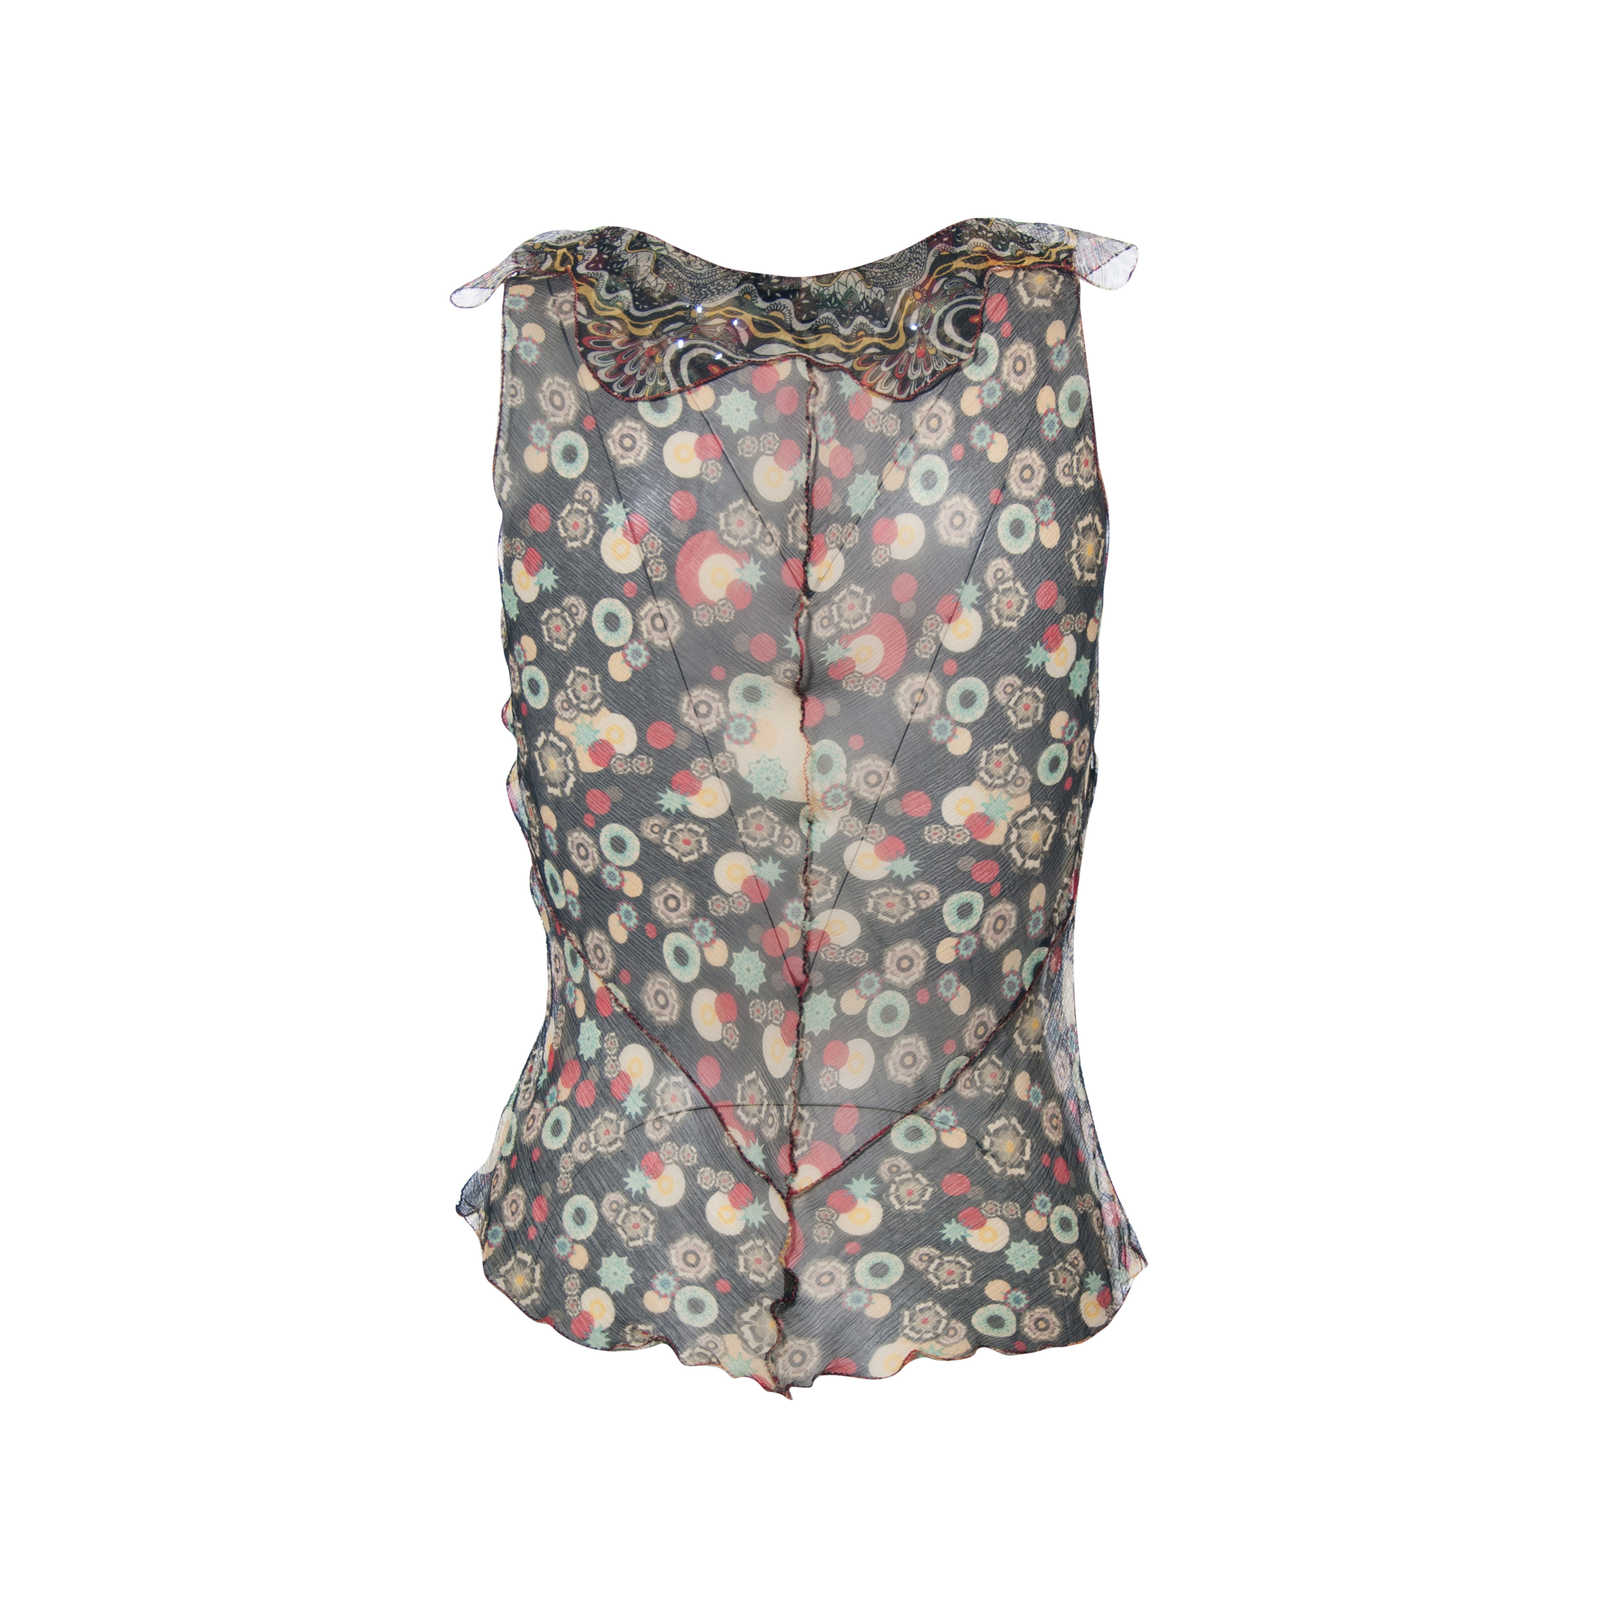 f484b59e5e2f1 ... Authentic Second Hand Rozae Nichols Printed Sheer Sleeveless Top  (PSS-265-00105) ...